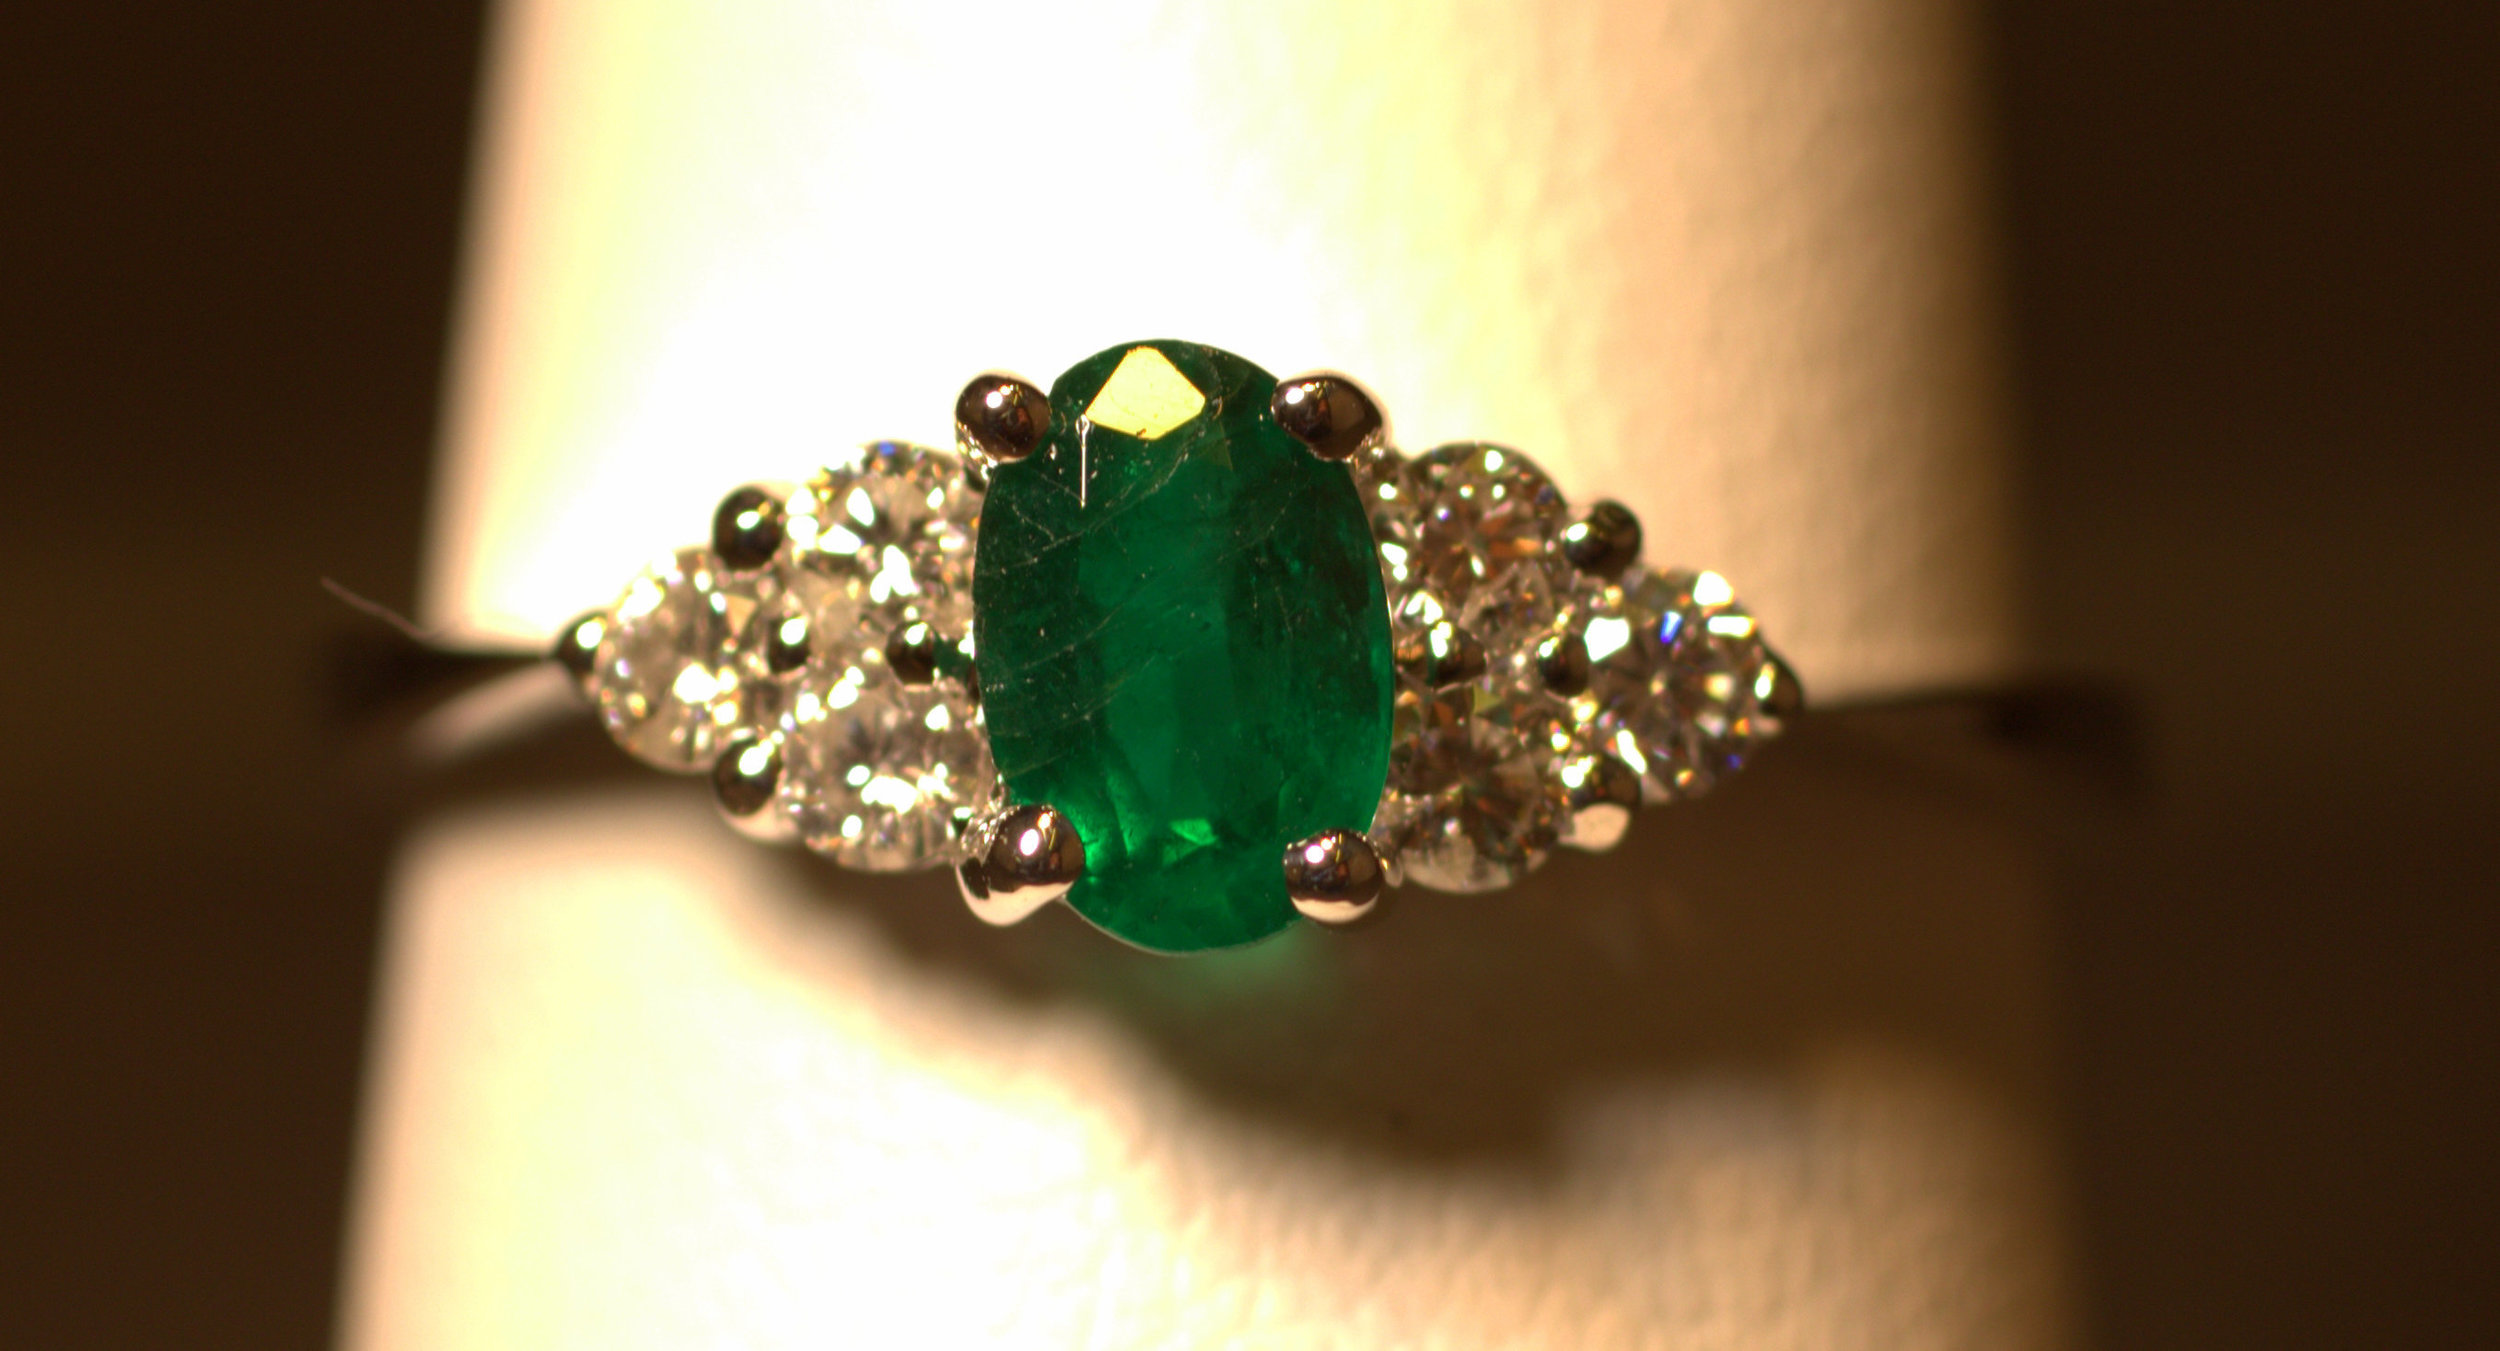 6 diamond and1emerald ring. The oval emerald has 3 diamonds on either side. Thesebright white diamonds accentuate the nice darker green emerald. This piece is made in white gold and is a great modern take on a classic 3 stone ring.  $1350